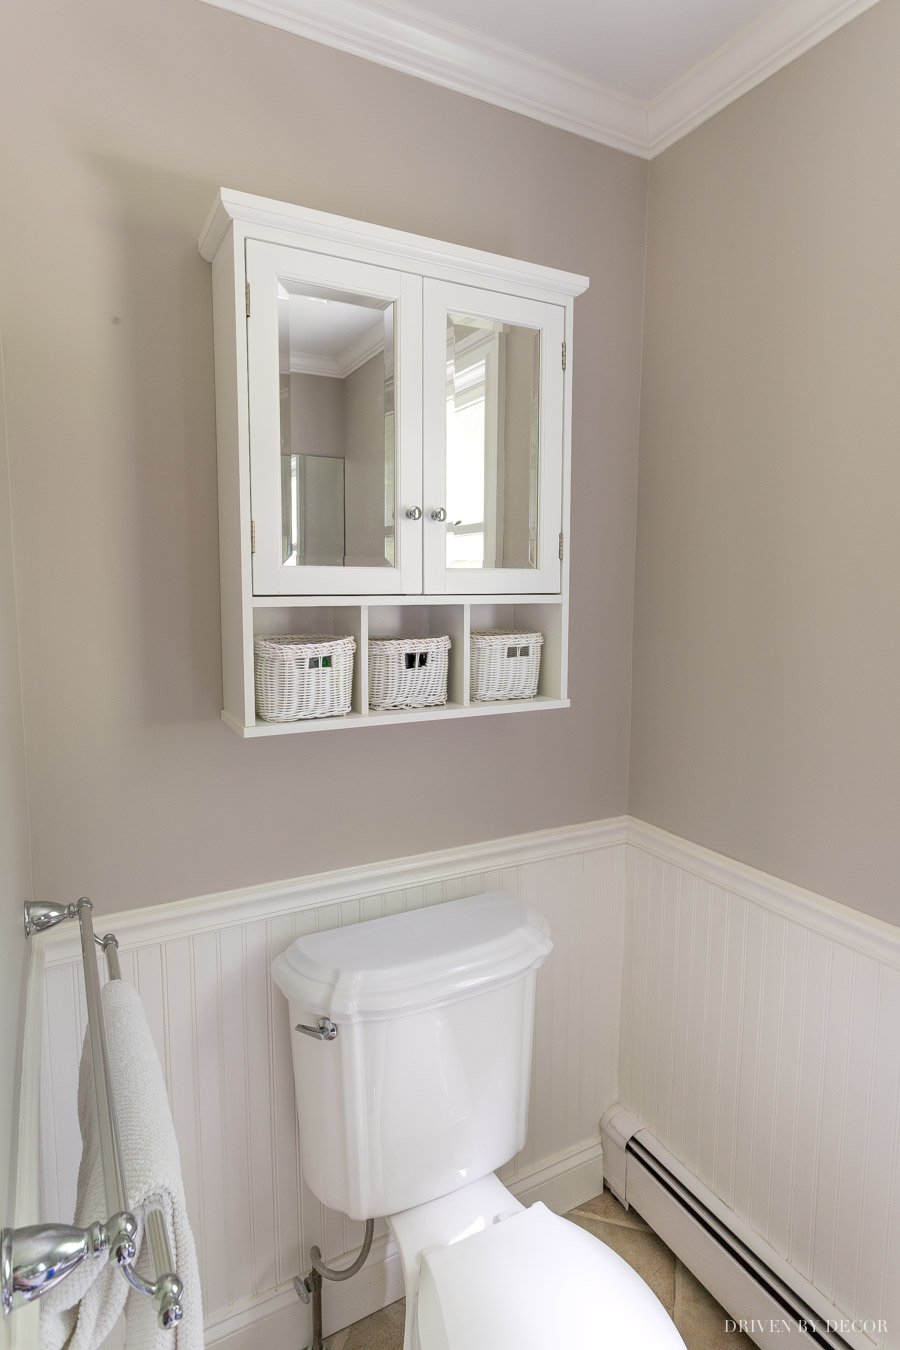 SO great for over the toilet storage in a bathroom!